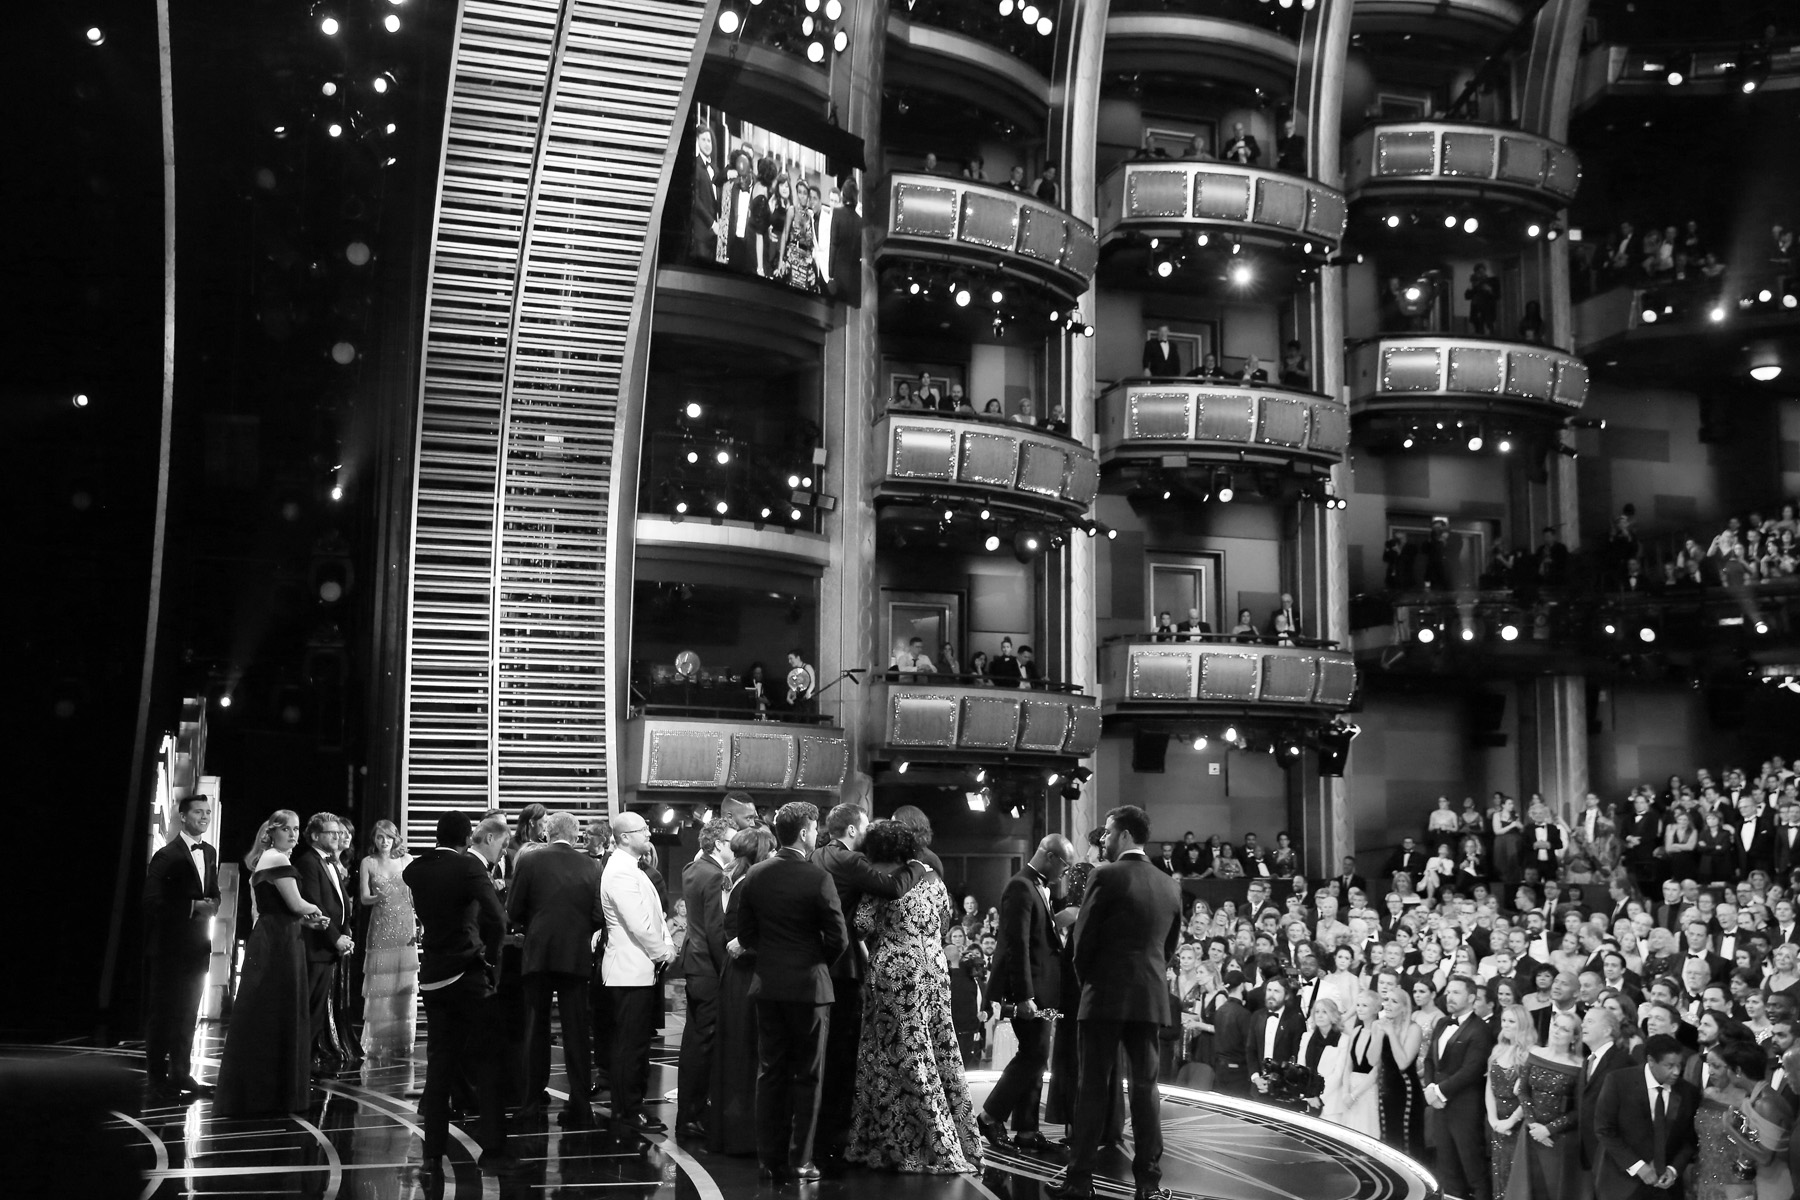 The cast and crew of {quote}Moonlight{quote} accept the award for best picture at the Oscars on Sunday, Feb. 26, 2017, at the Dolby Theatre in Los Angeles. (Photo by Matt Sayles/Invision/AP)